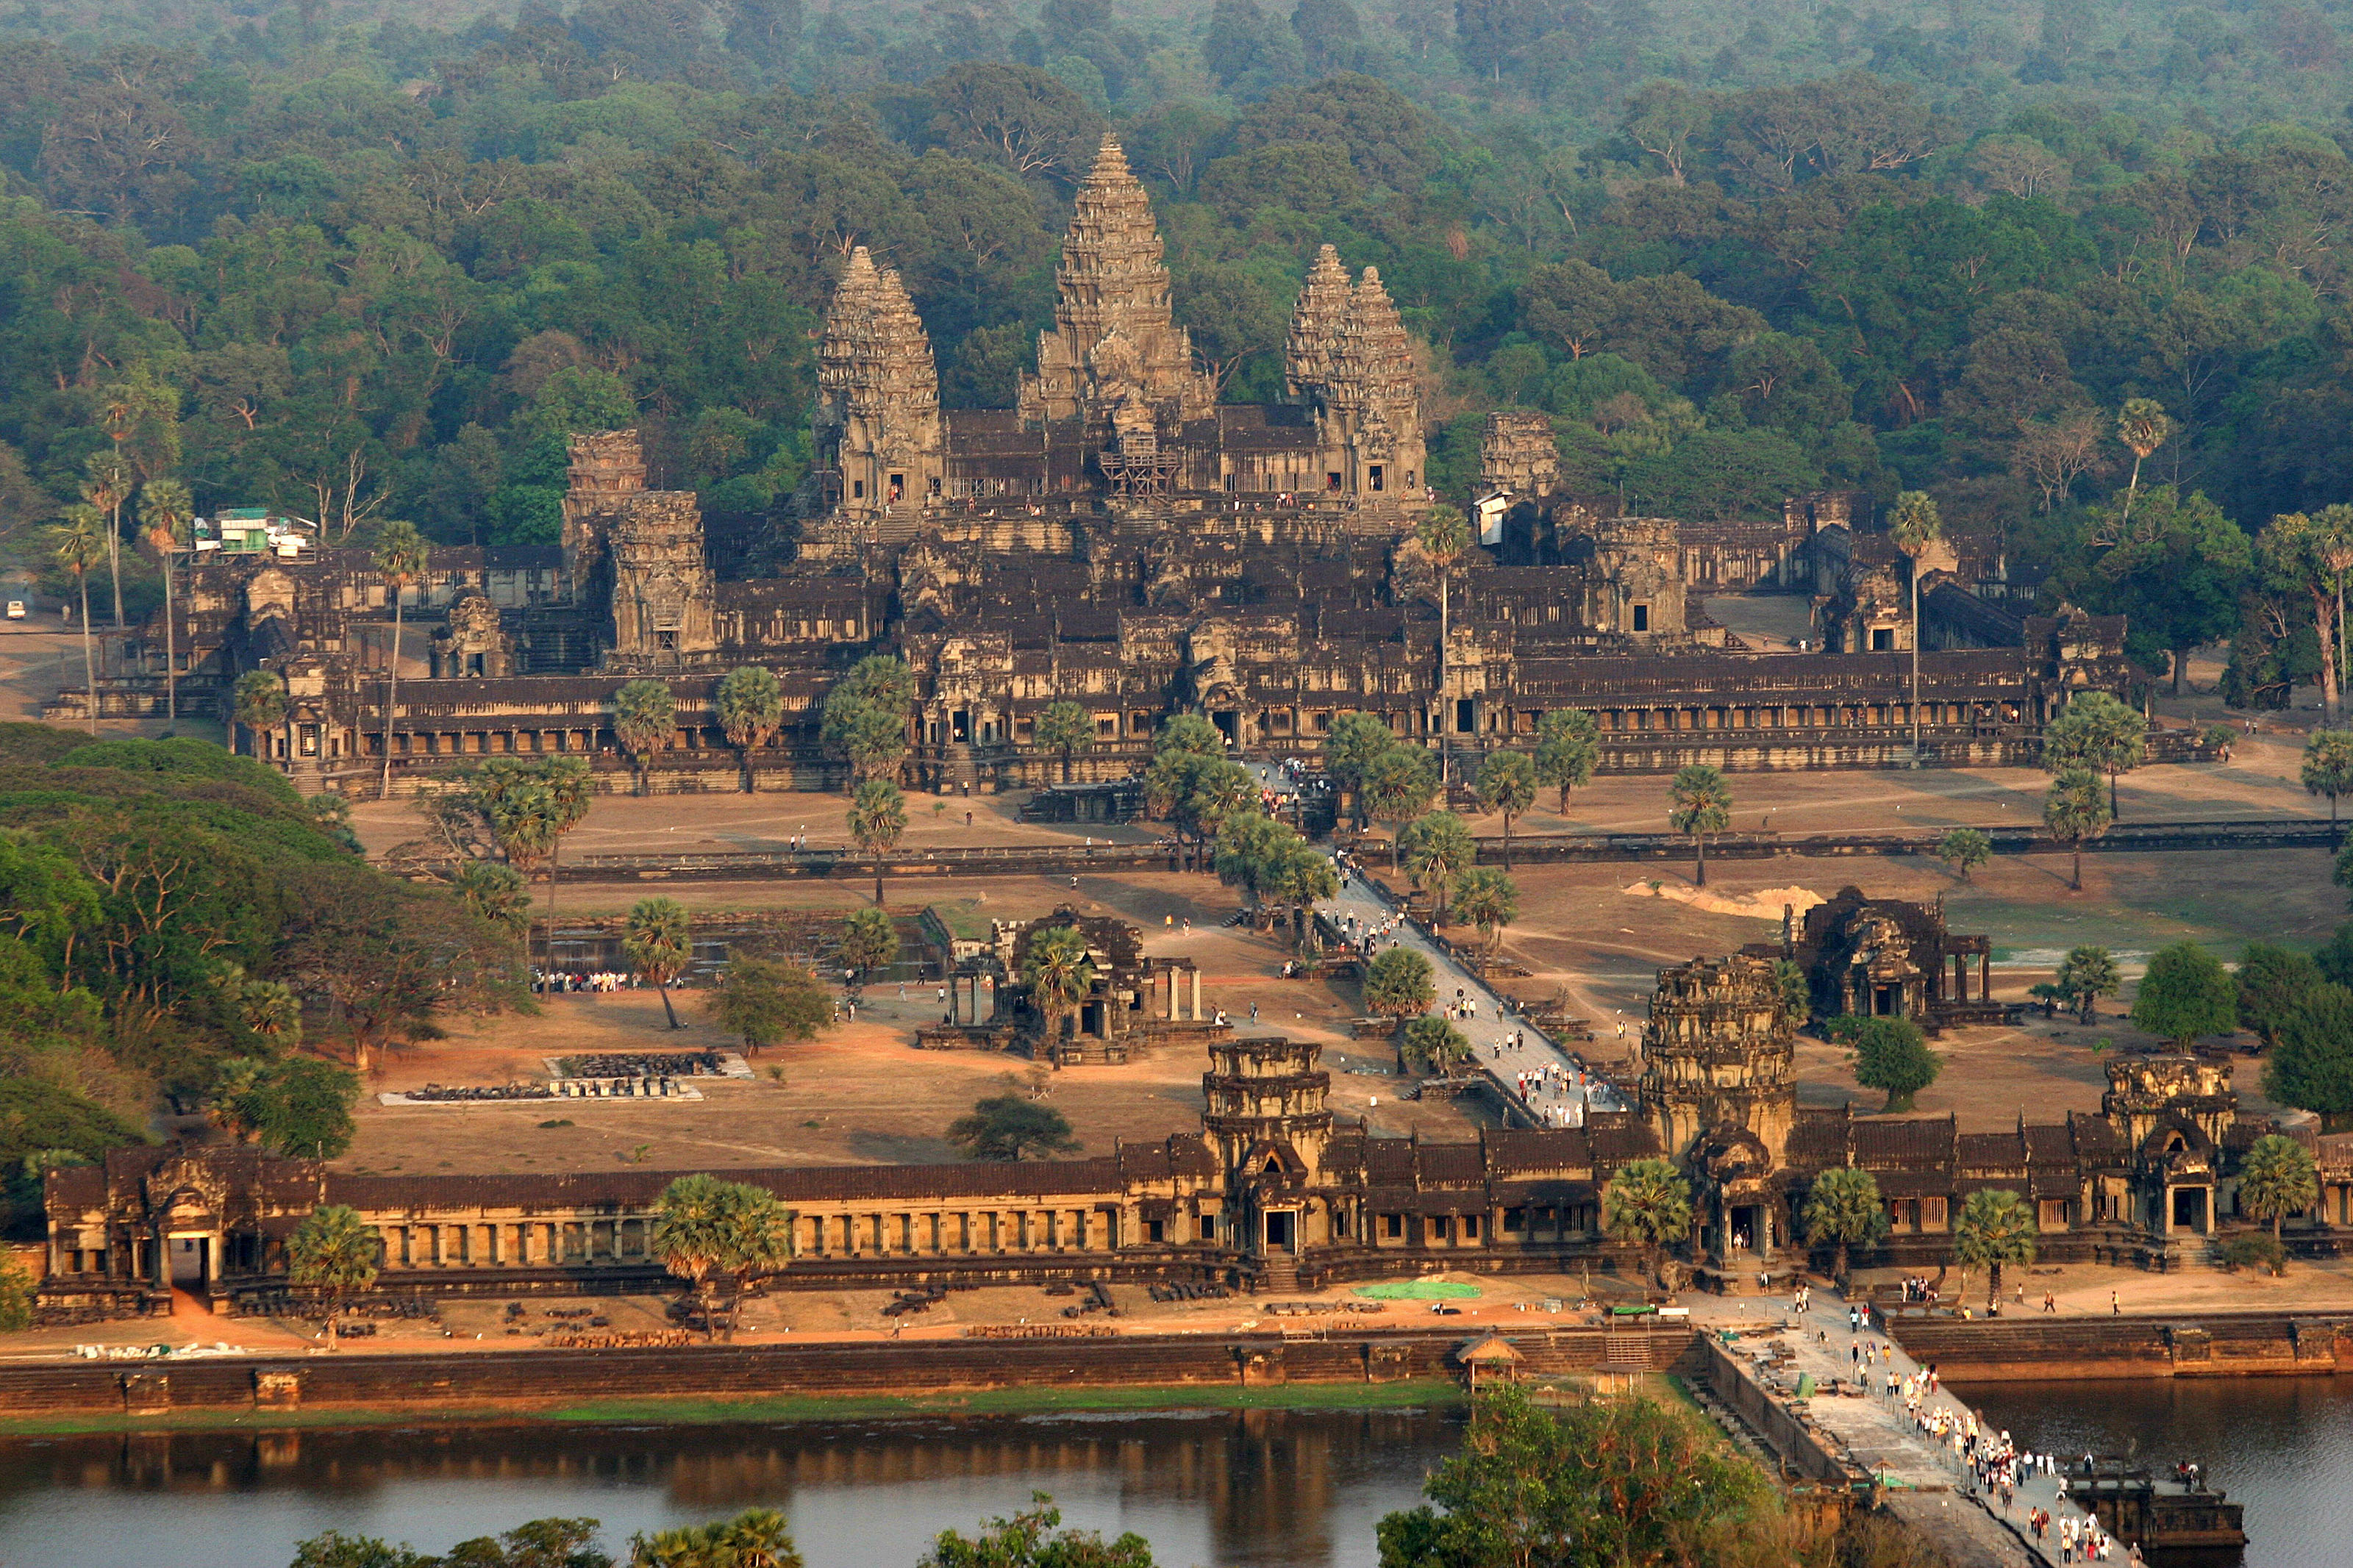 Part 2: Finding a way home from Cambodia and my goal of keeping the total cost of this trip under $350